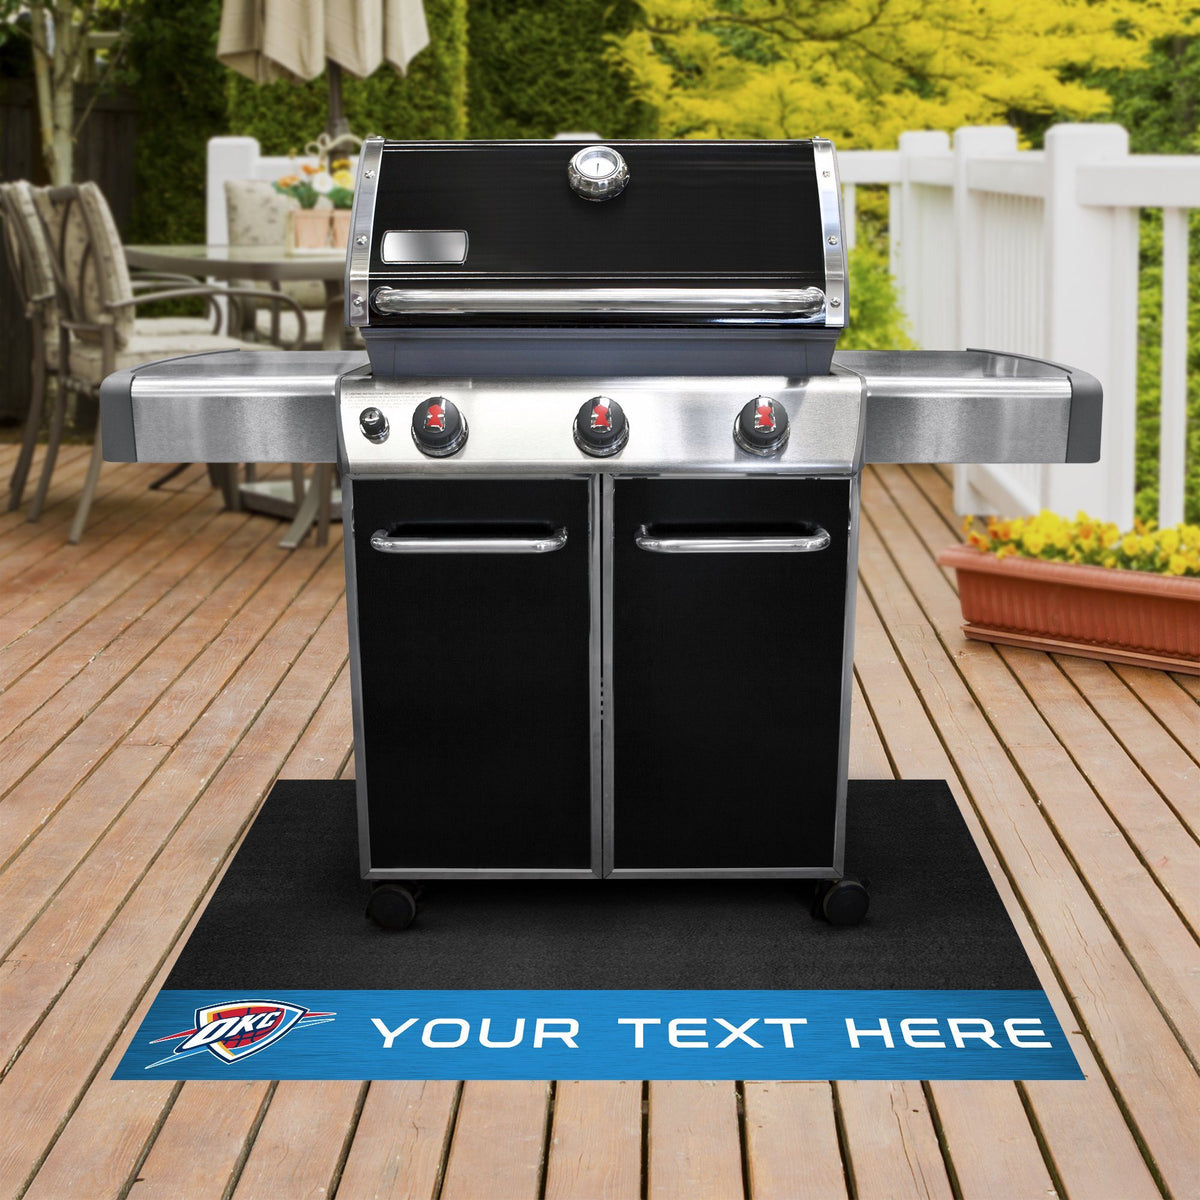 NBA Personalized Grill Mat Personalized Grill Mat Fan Mats Oklahoma City Thunder